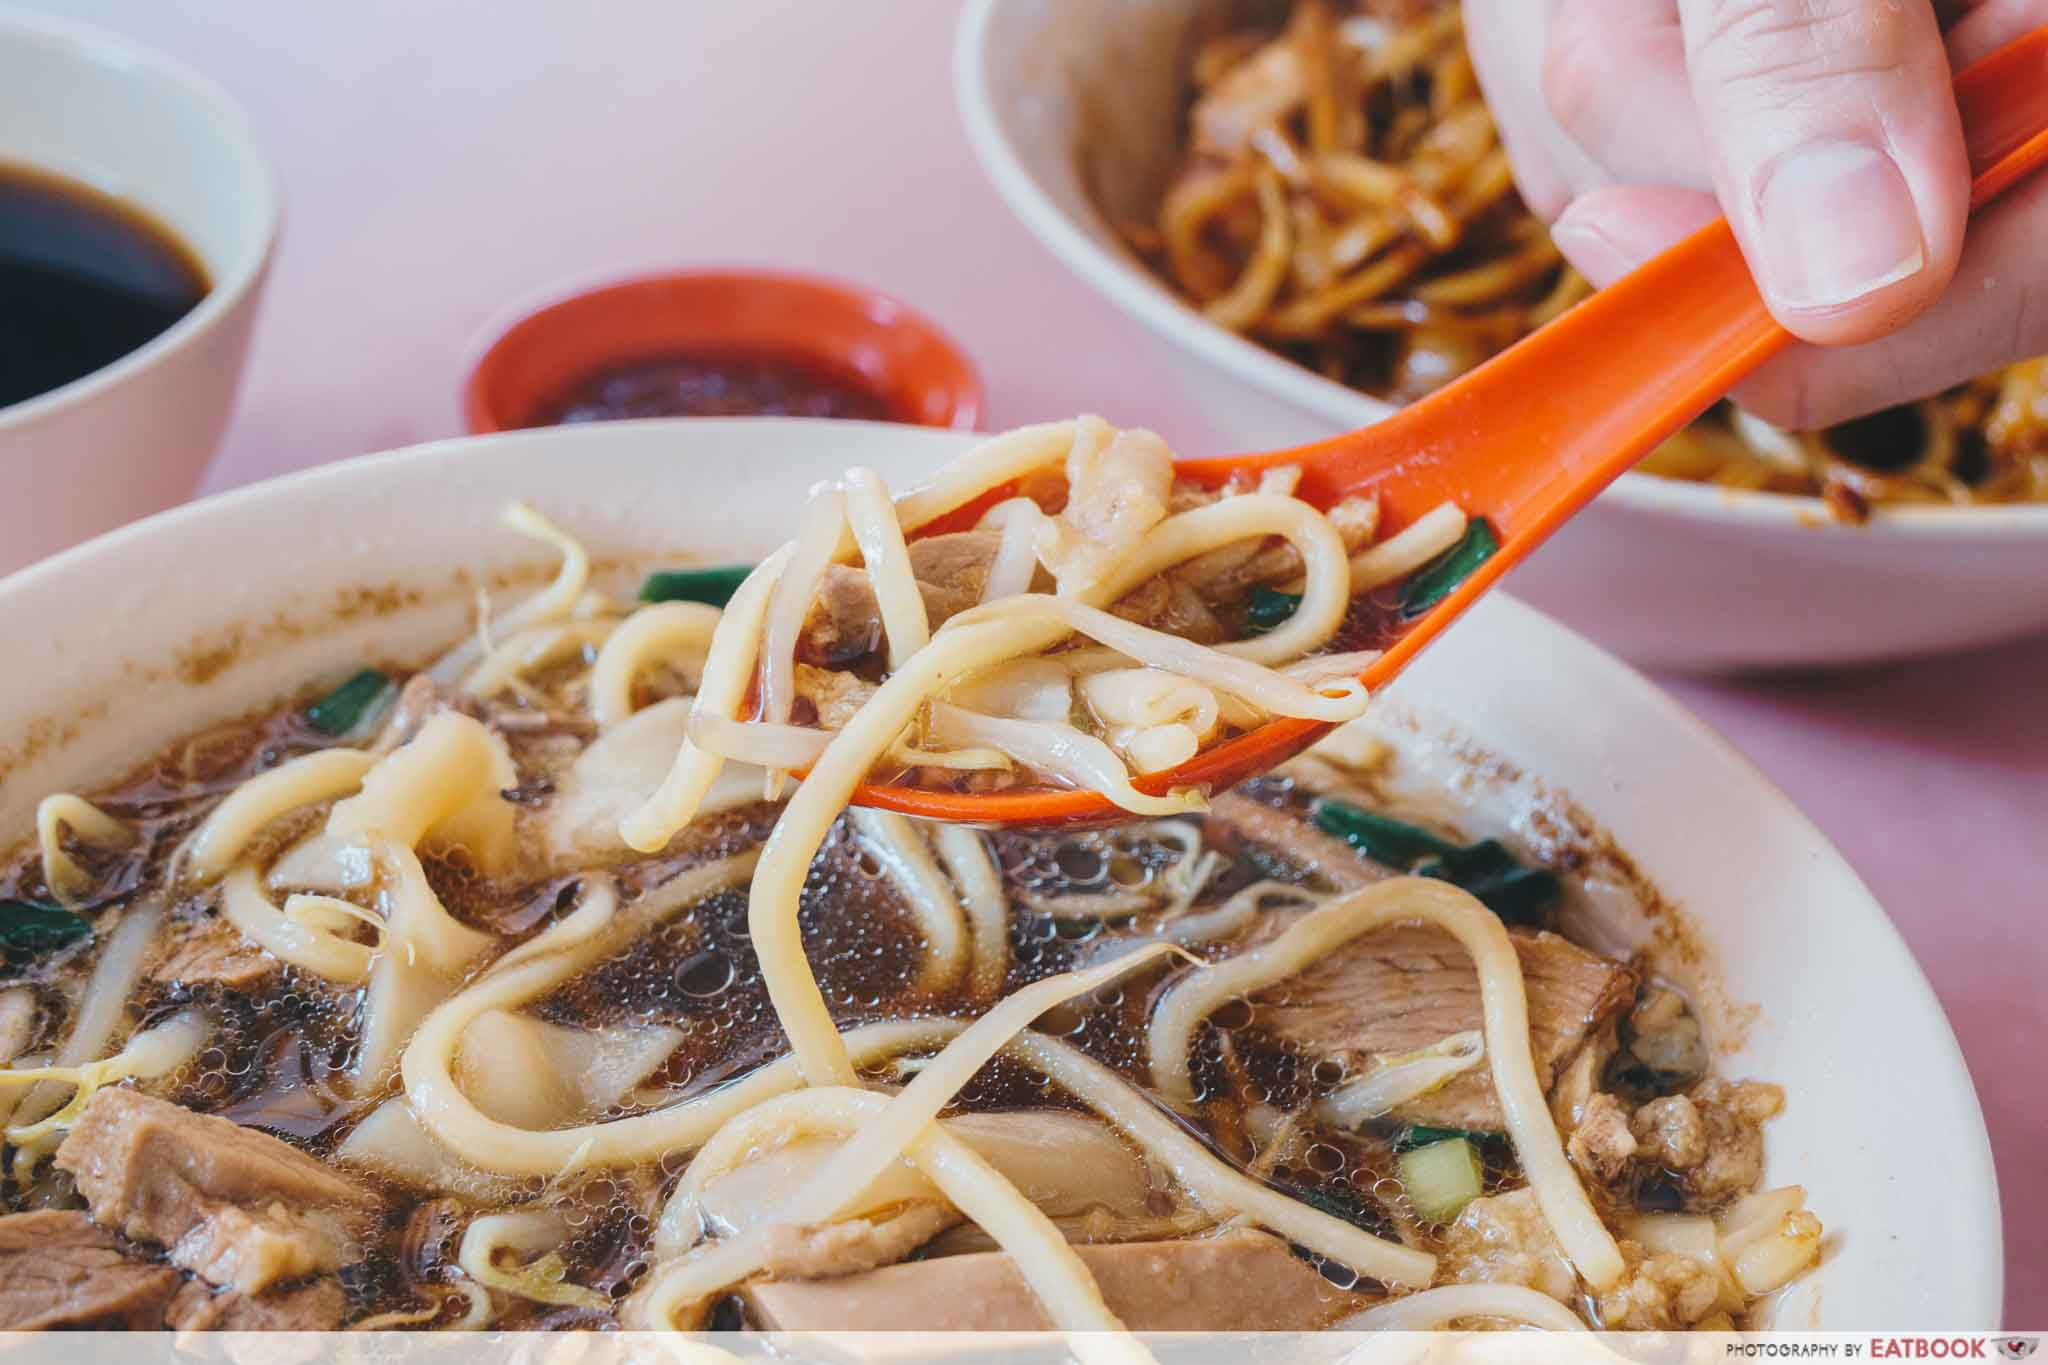 Heng Huat - Spoonful of mix noodles